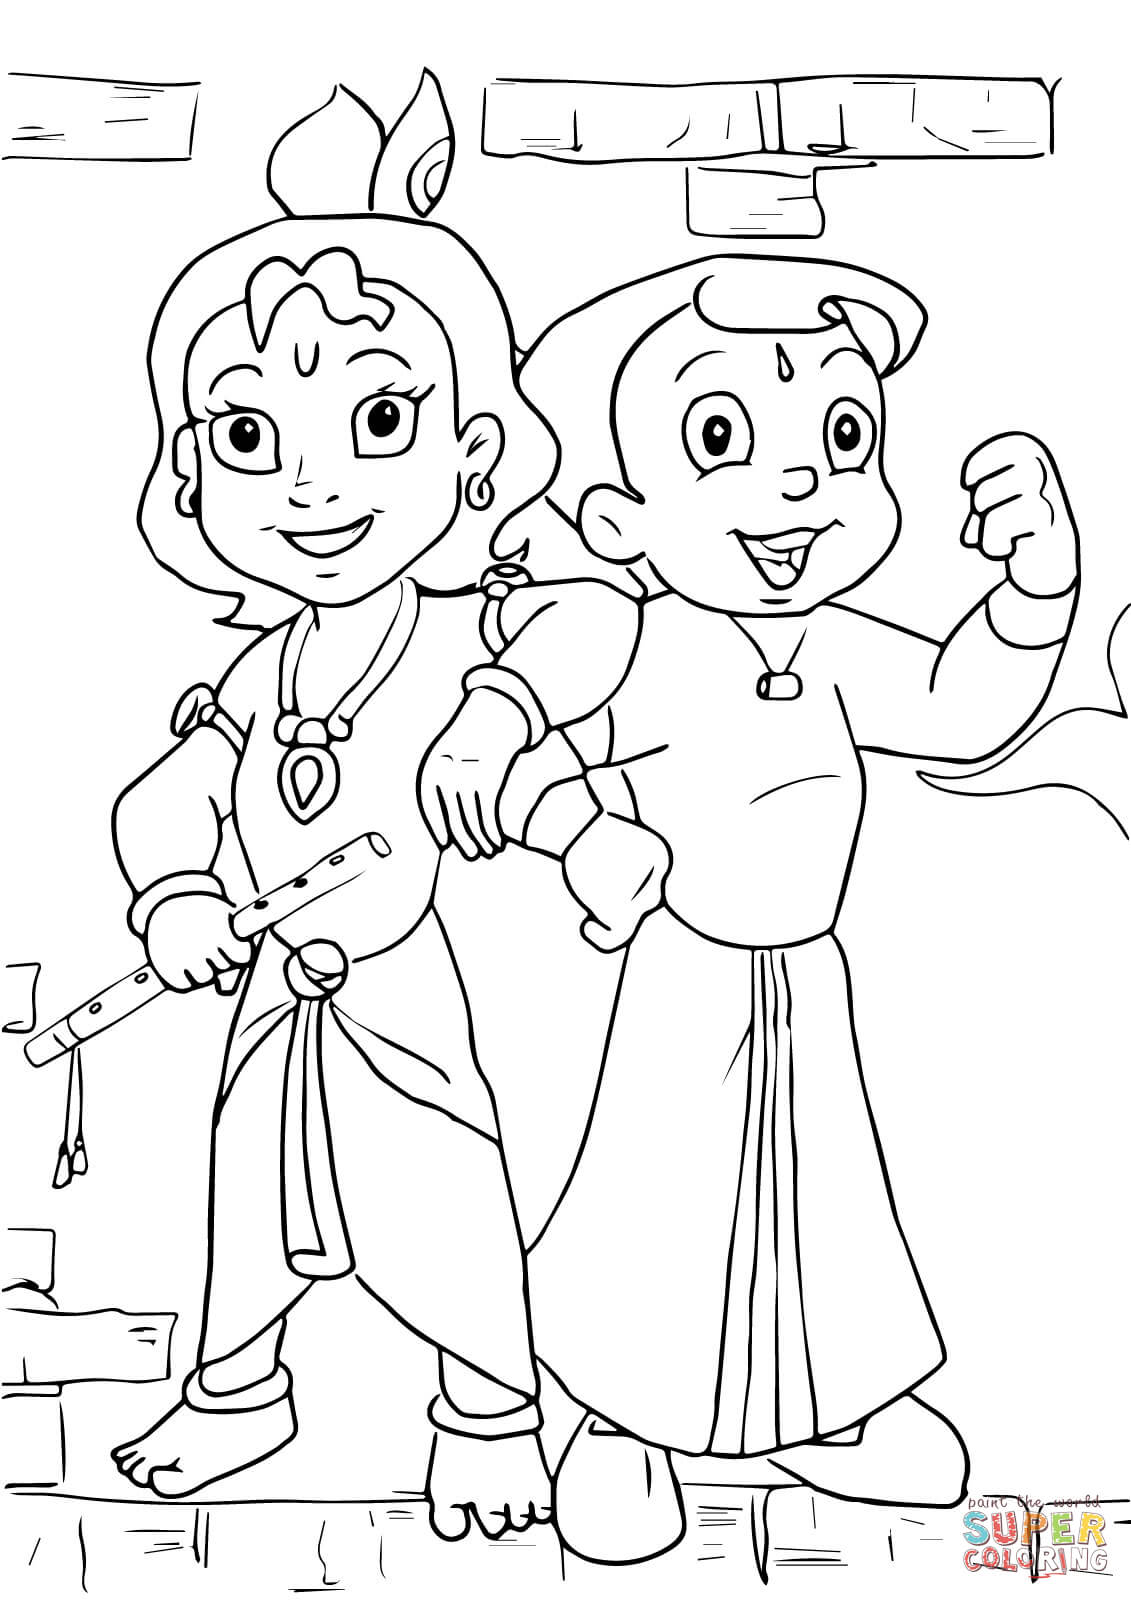 Coloring Pages Chota Bheem Coloring Pages chota bheem images az coloring pages chhota and krishna page free printable pages